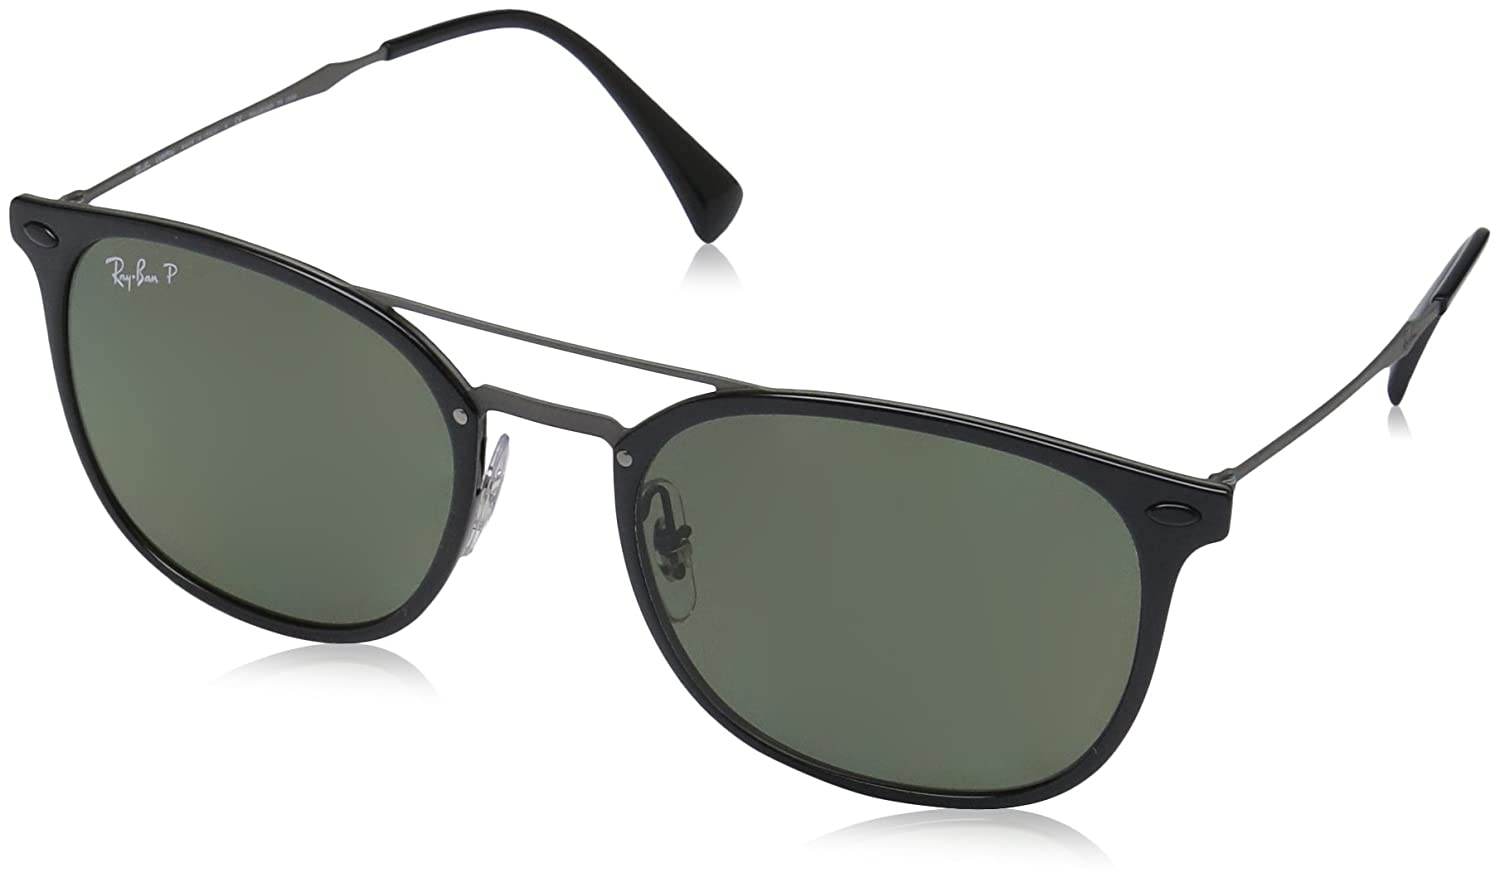 fb3bc21685 Ray-Ban Plastic Man Polarized Square Sunglasses